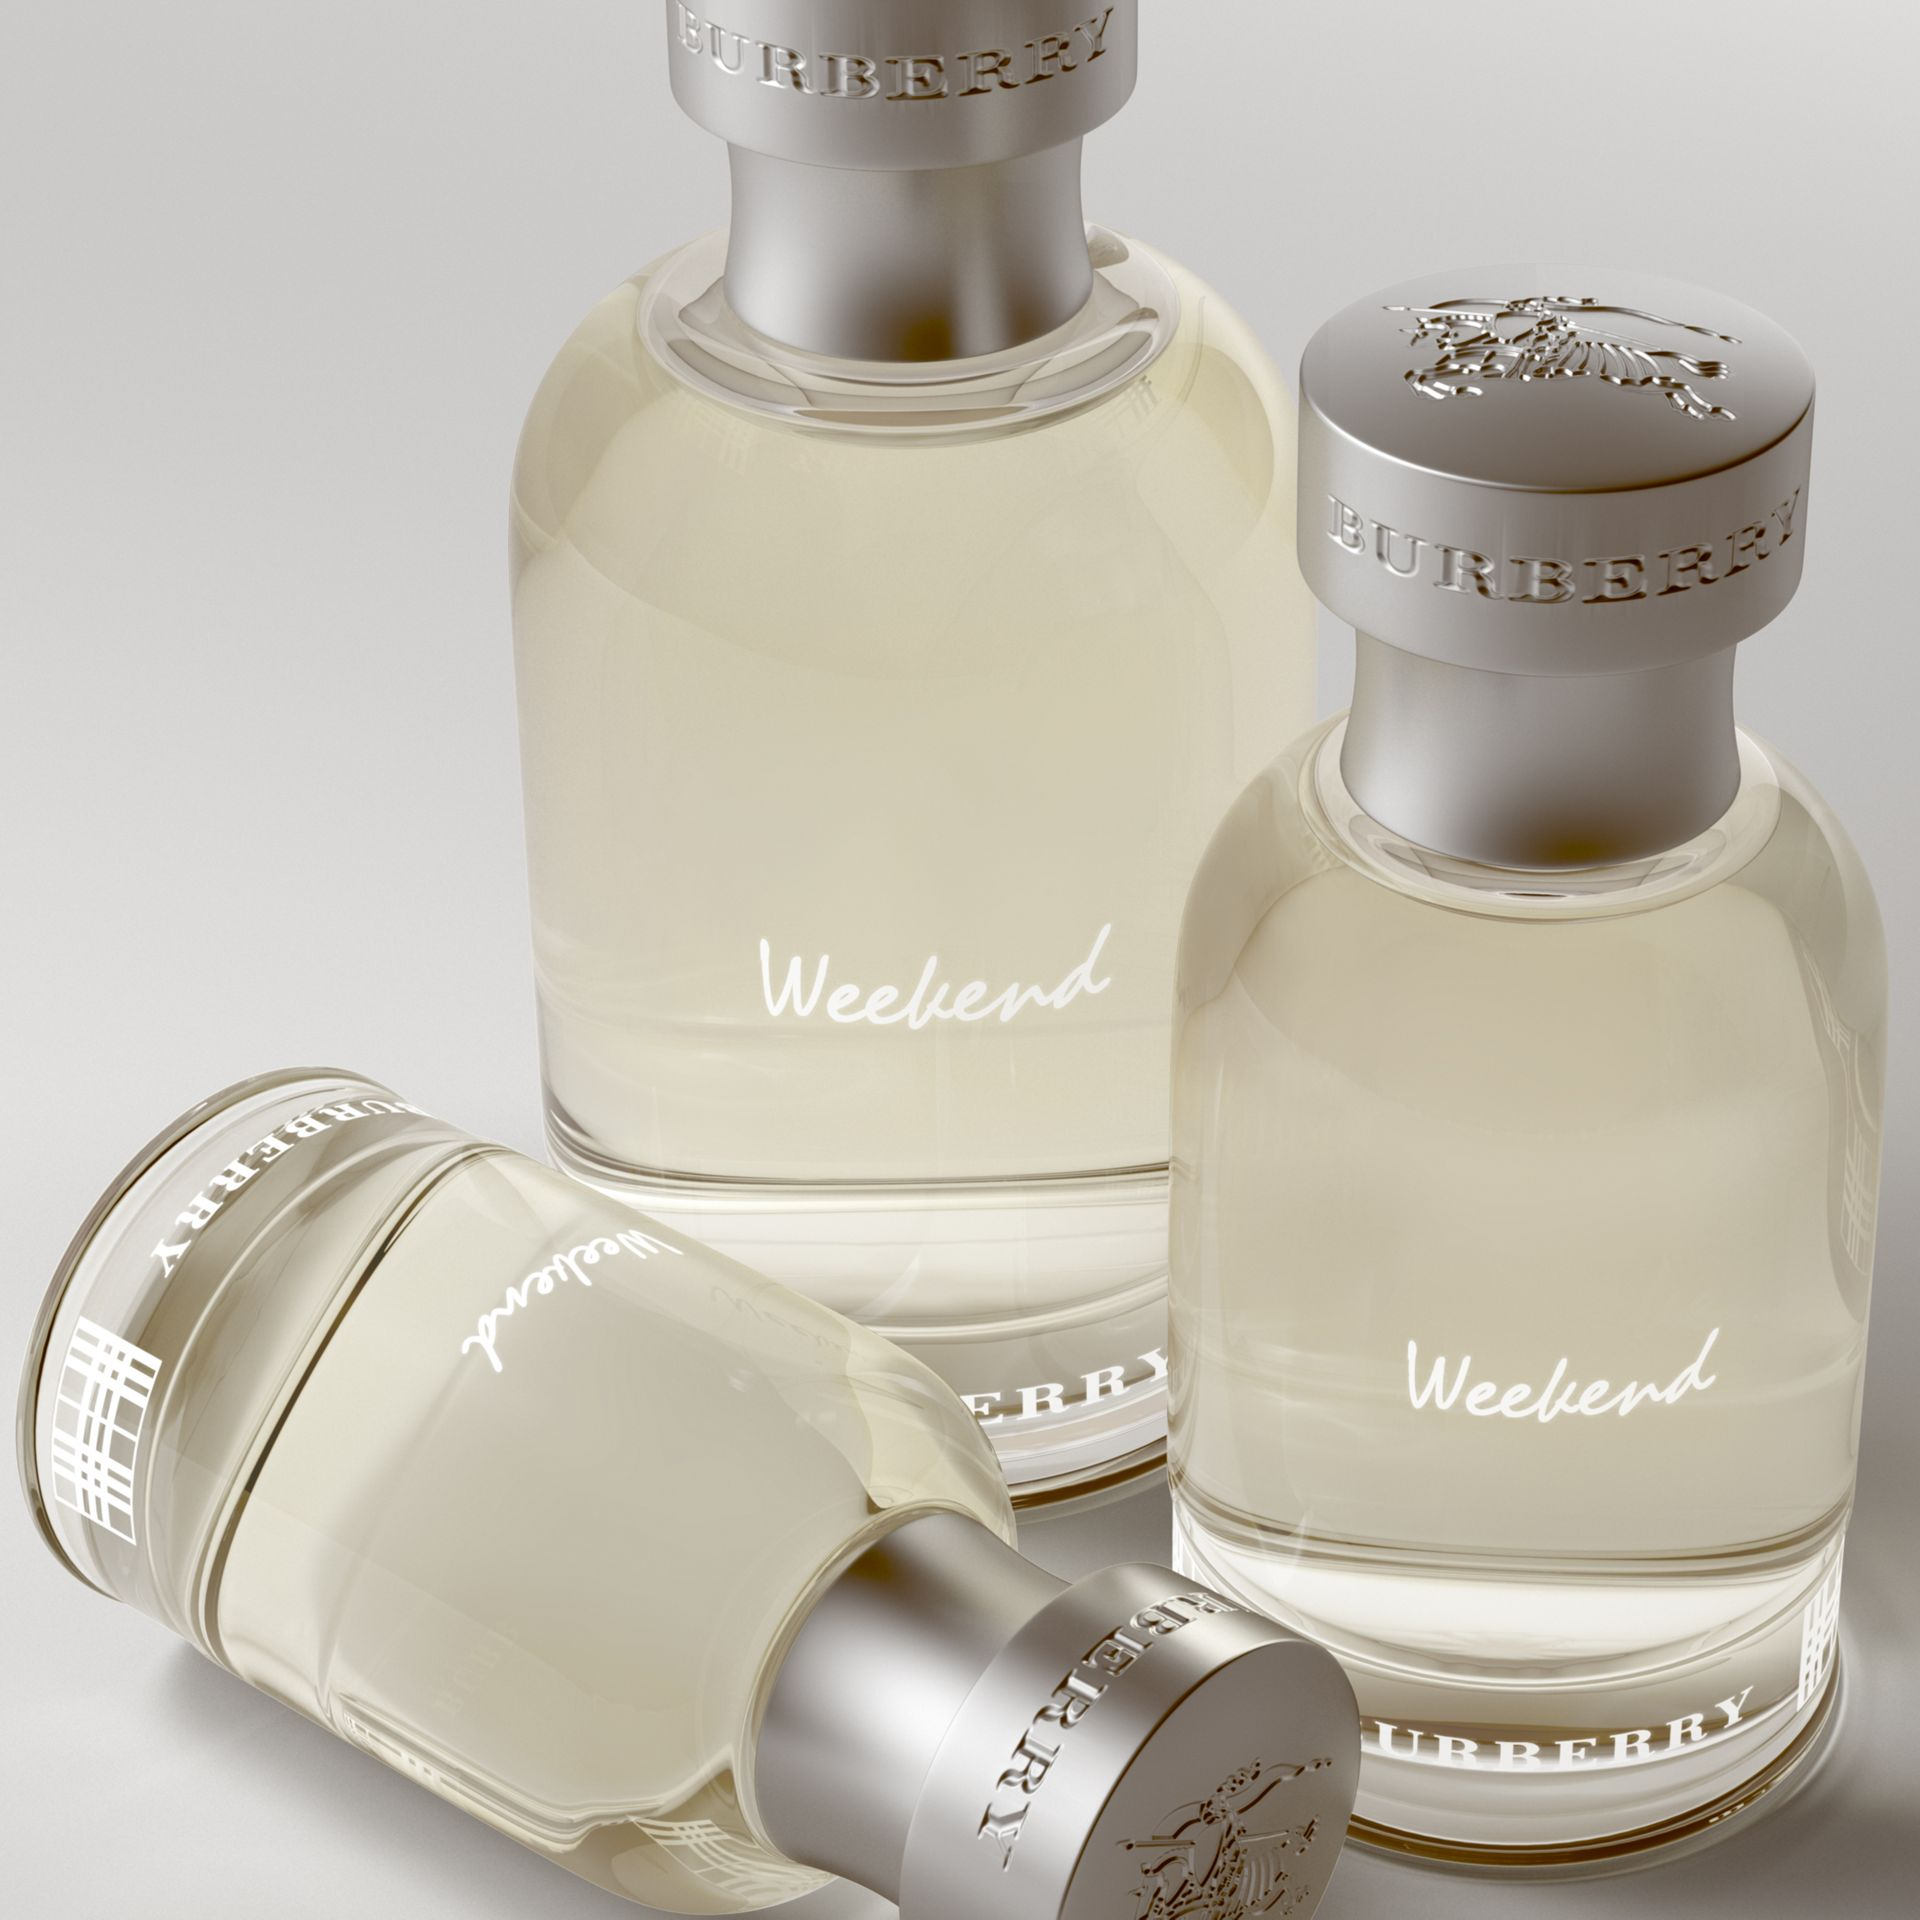 Burberry Weekend Eau de Toilette 100ml - gallery image 2